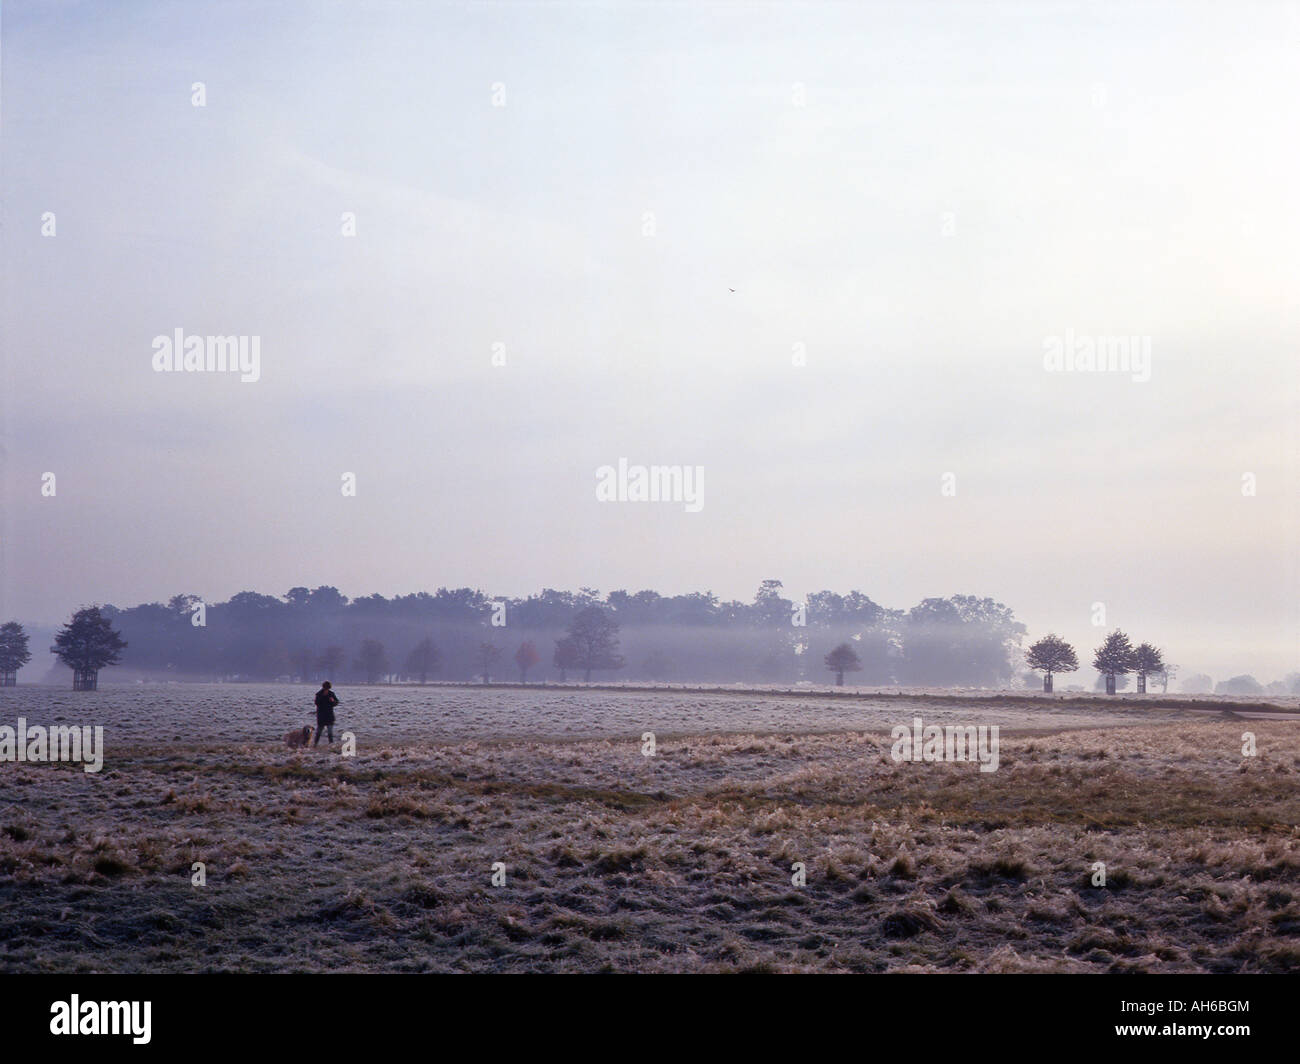 Lone figure with dog in a frosty landscape - Stock Image